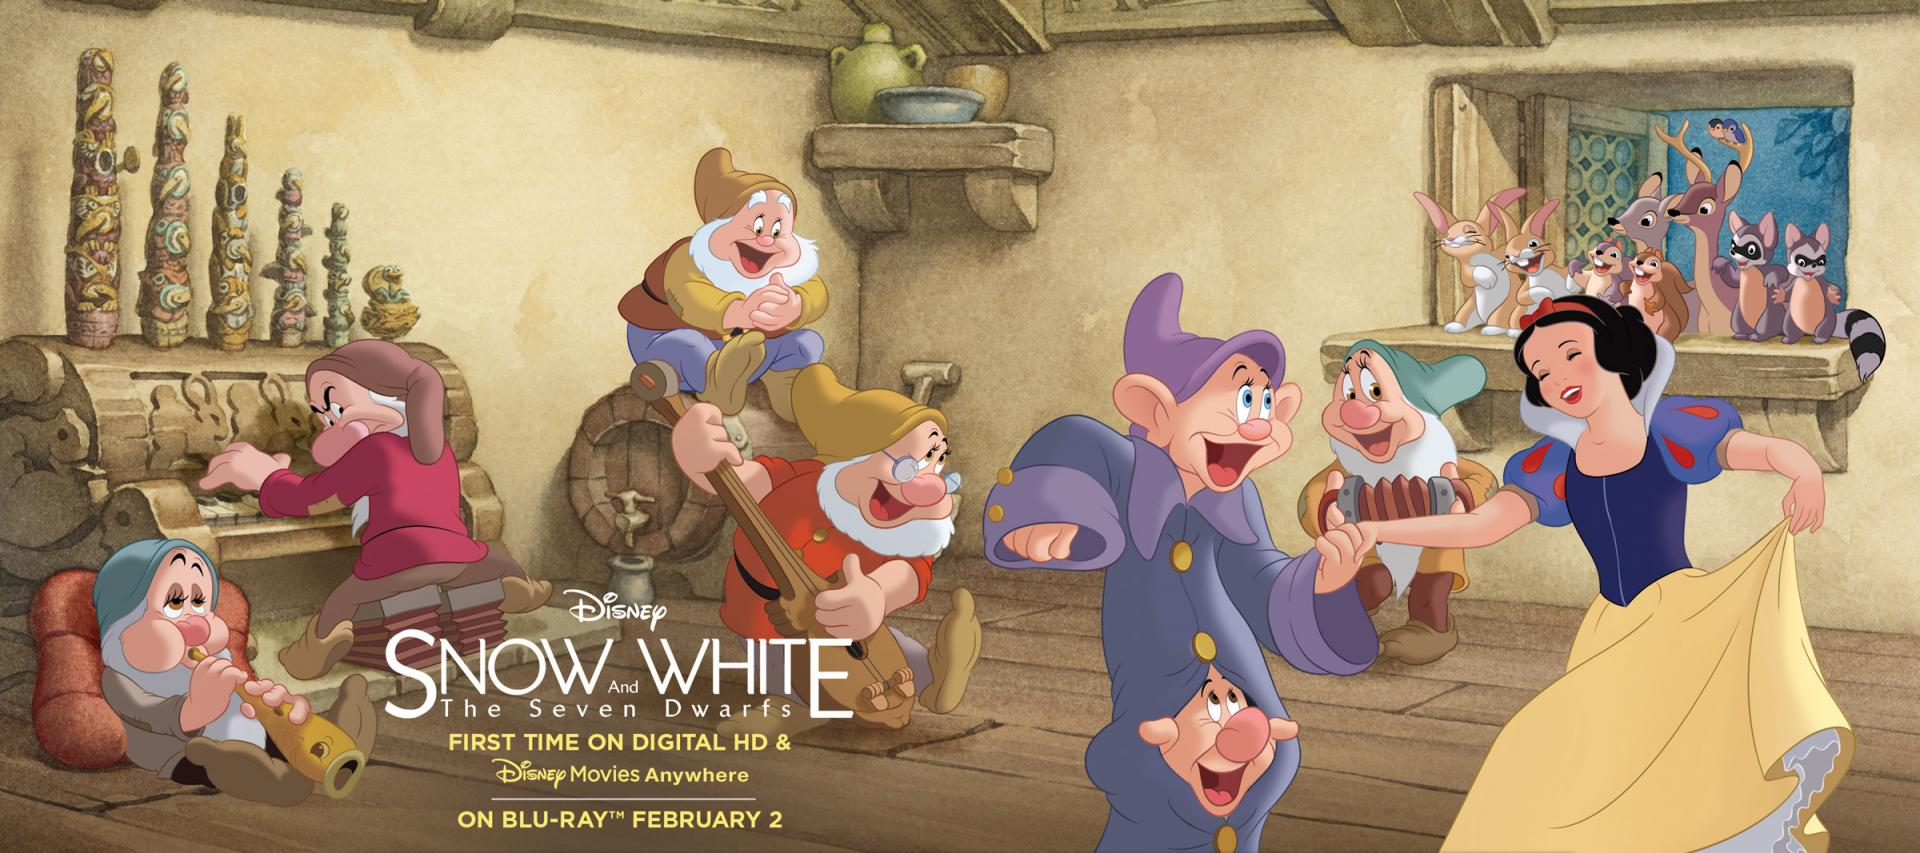 Snow white and the 7 nains porn